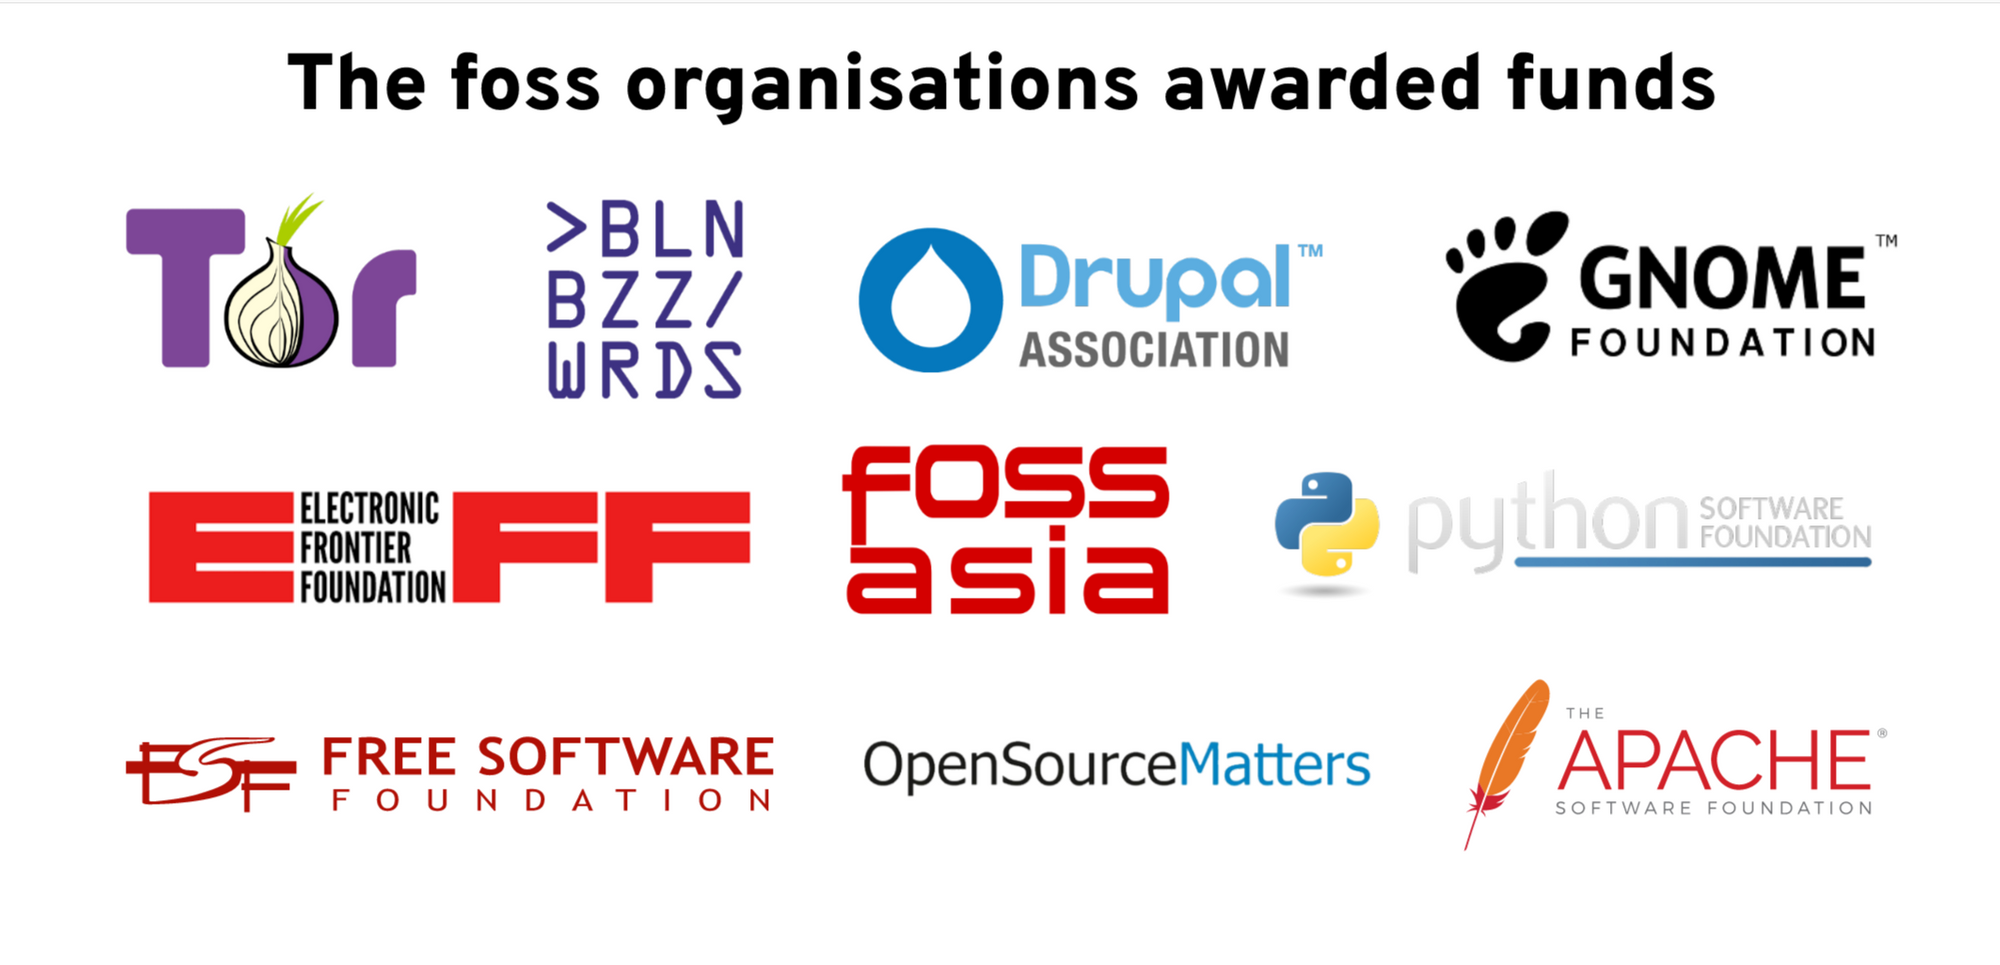 The 10 open source organizations we were able to UPLIFT!